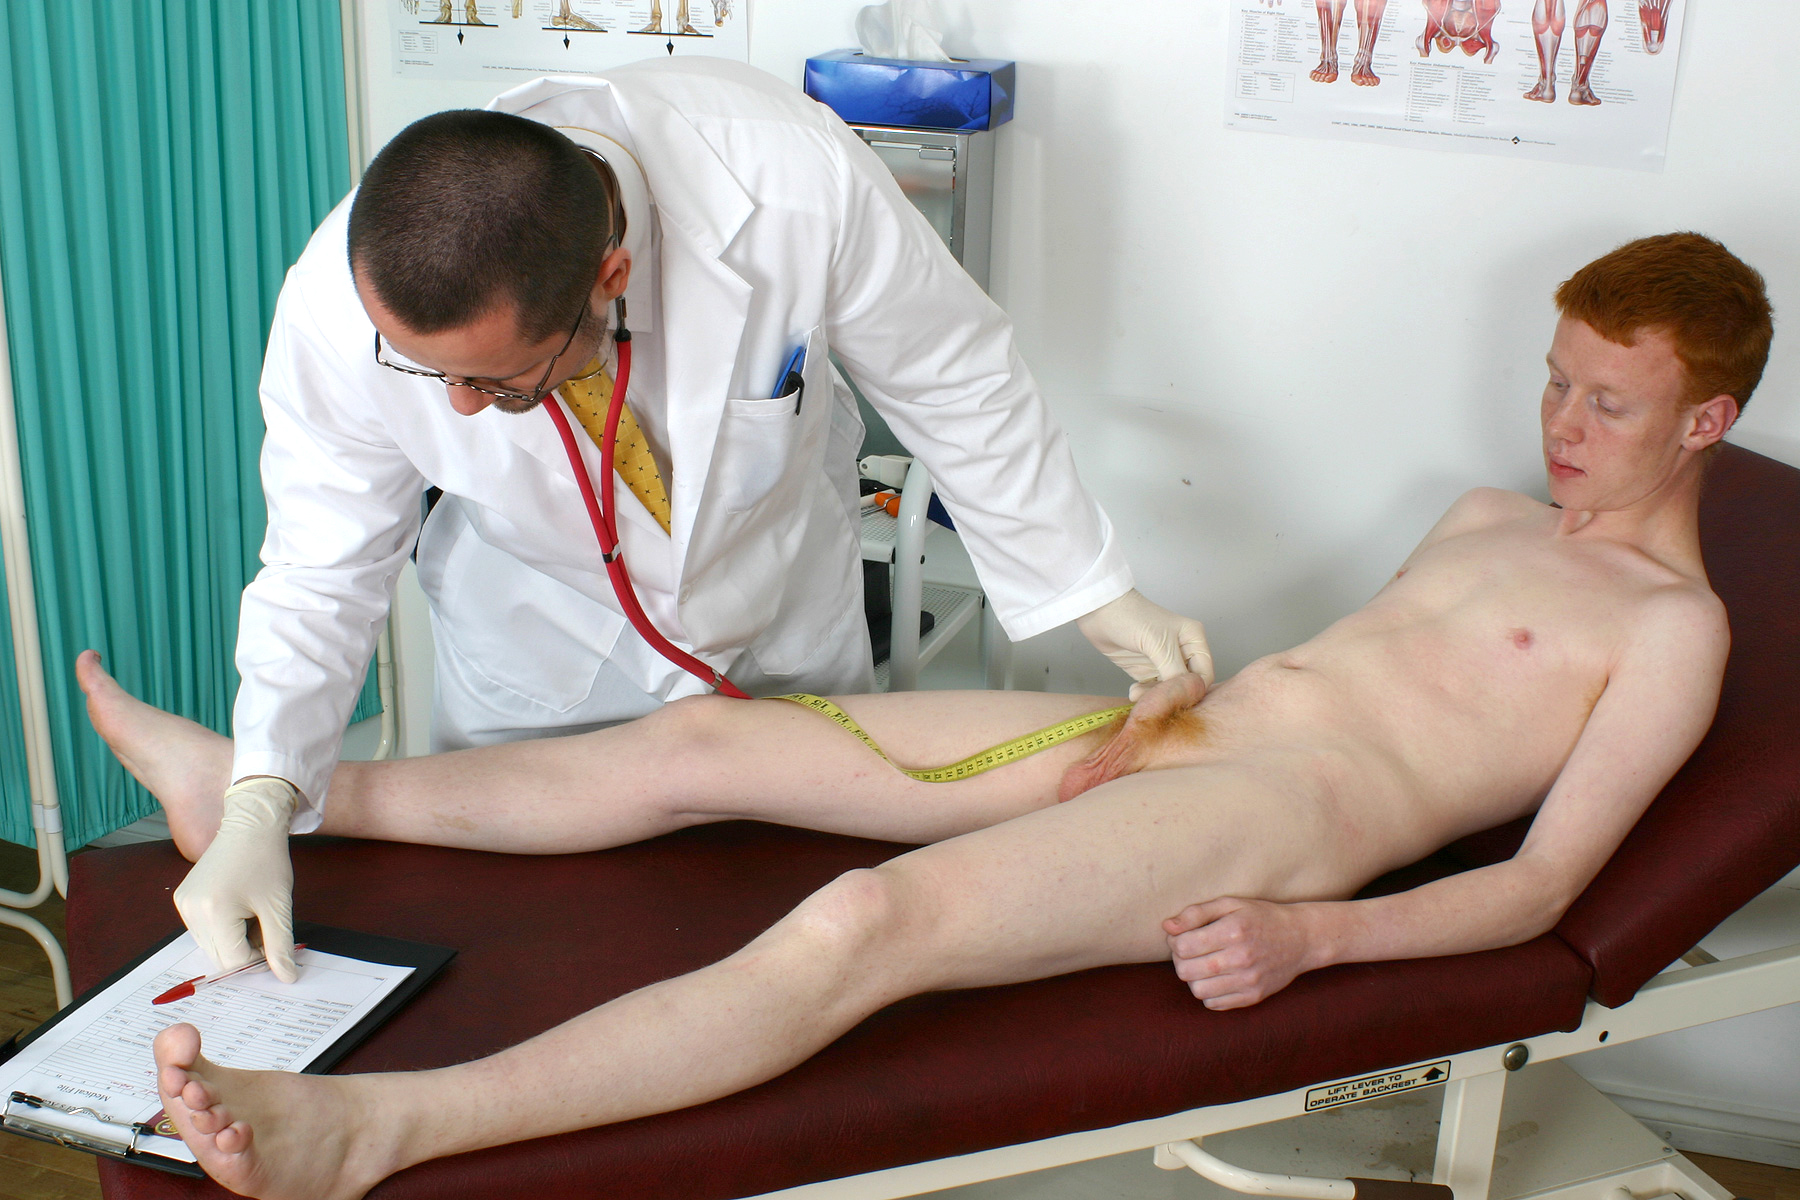 Gay medical porn boy video snapchat when